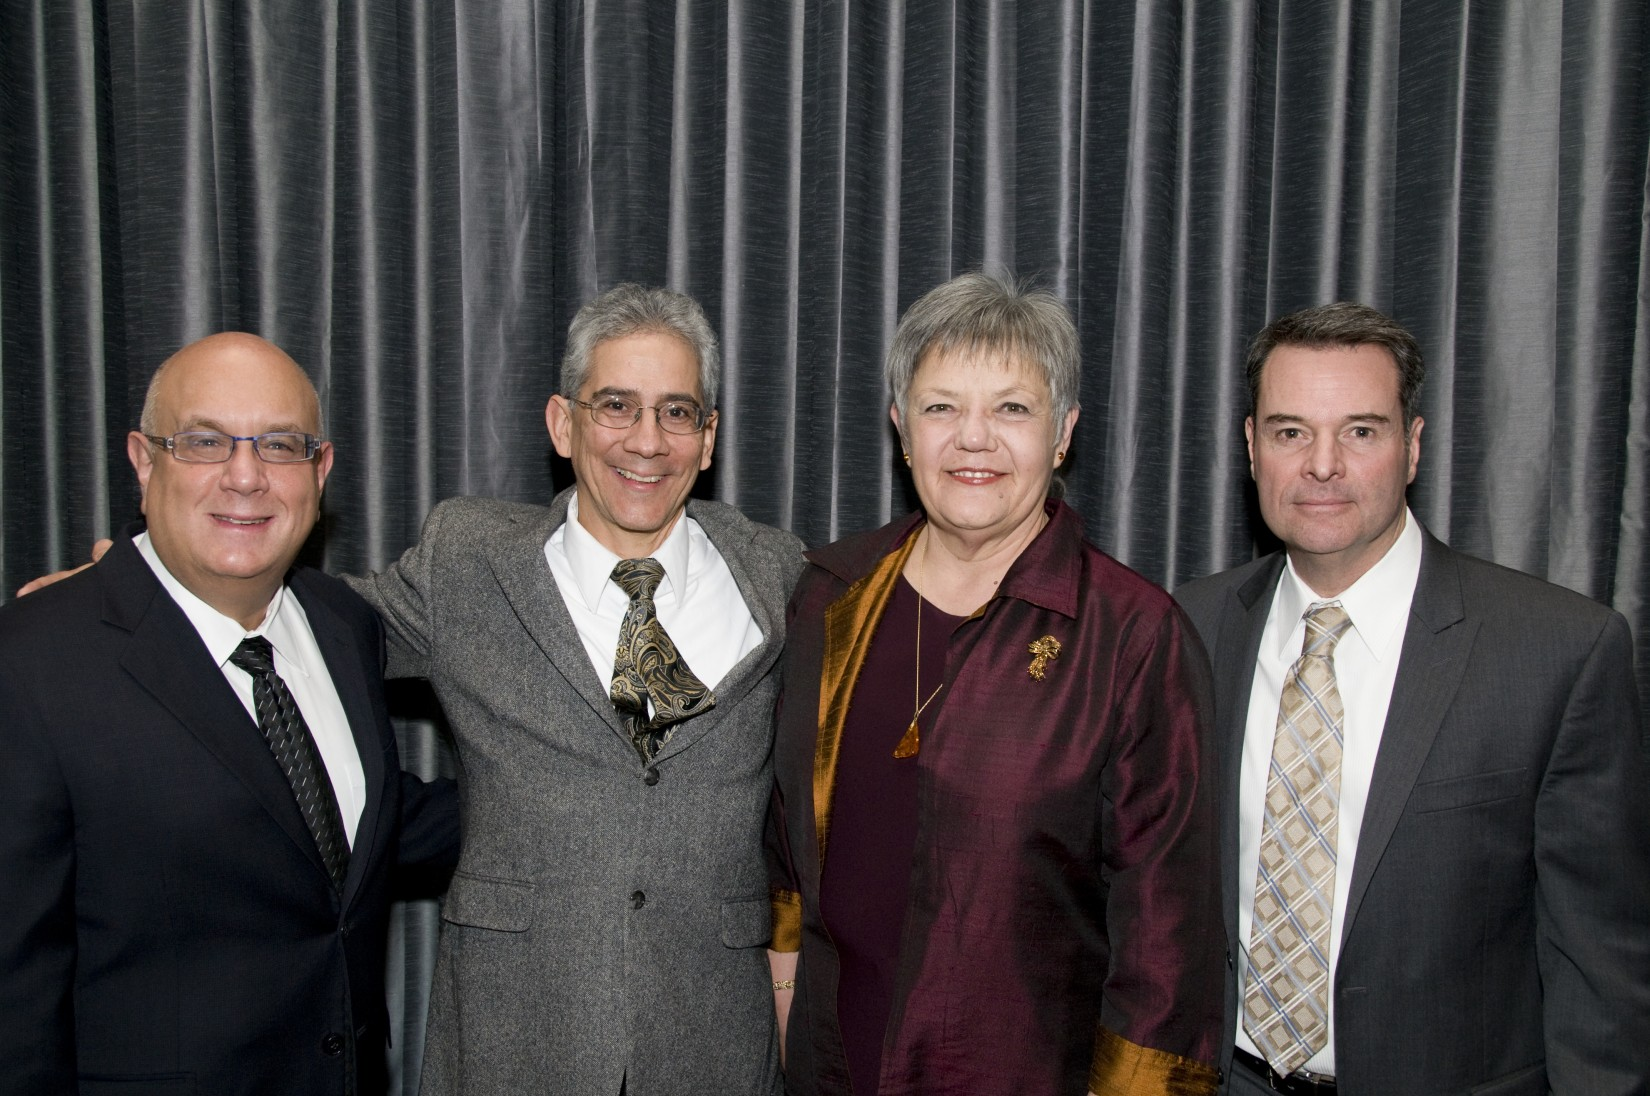 The Hon. Michael H. Simon, the Hon. Marco Hernandez, the Hon. Anna Brown '80, and the Hon. Michael McShane '88.